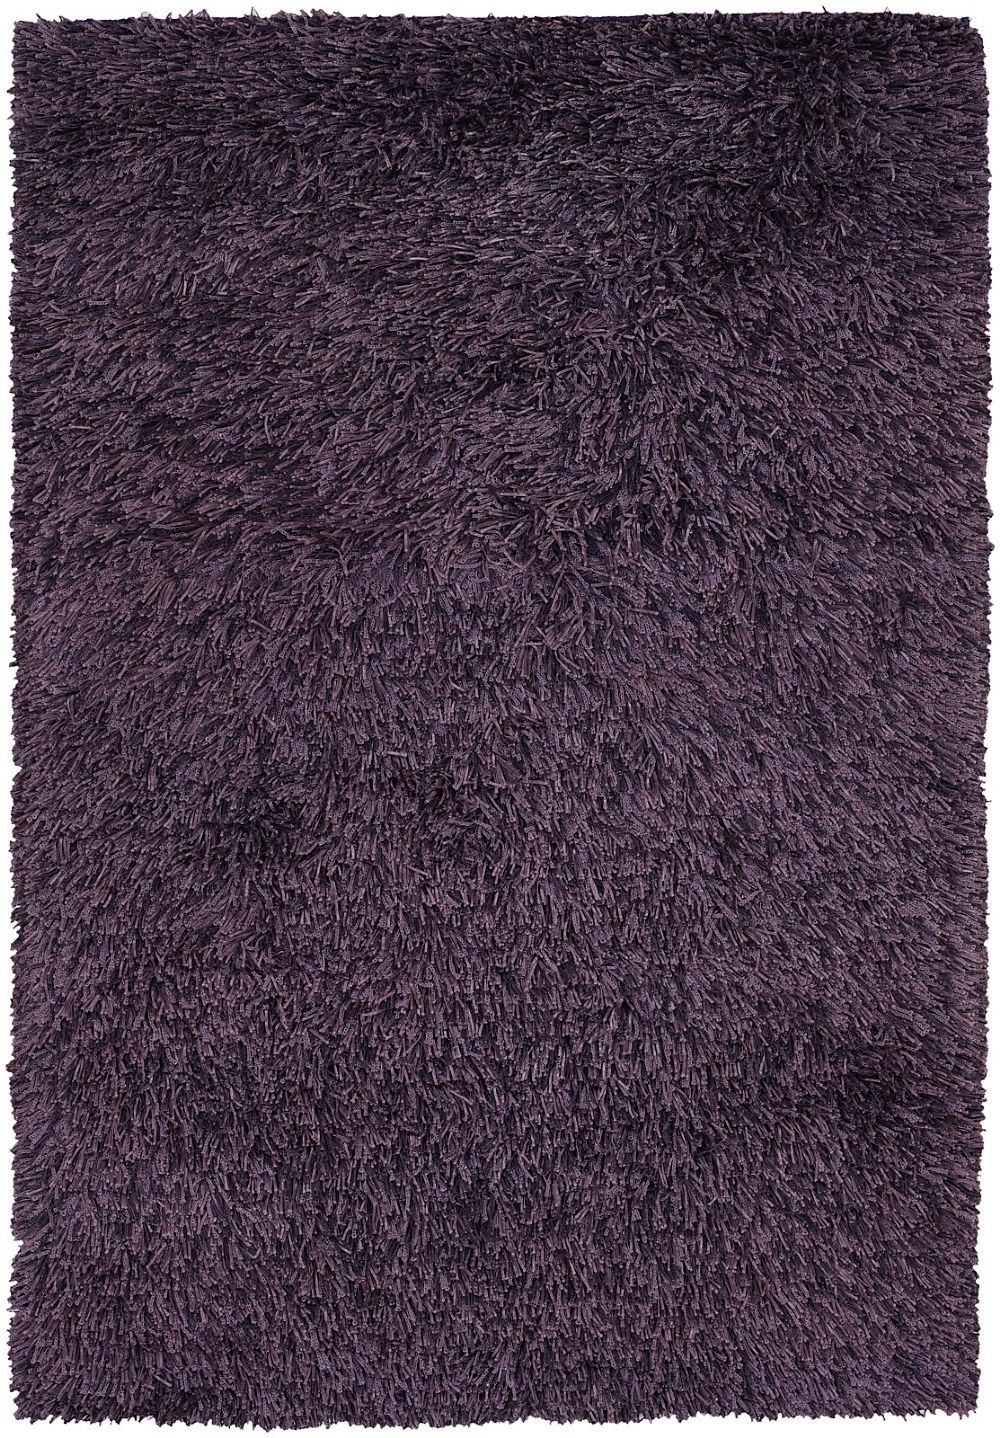 chandra breeze contemporary area rug collection